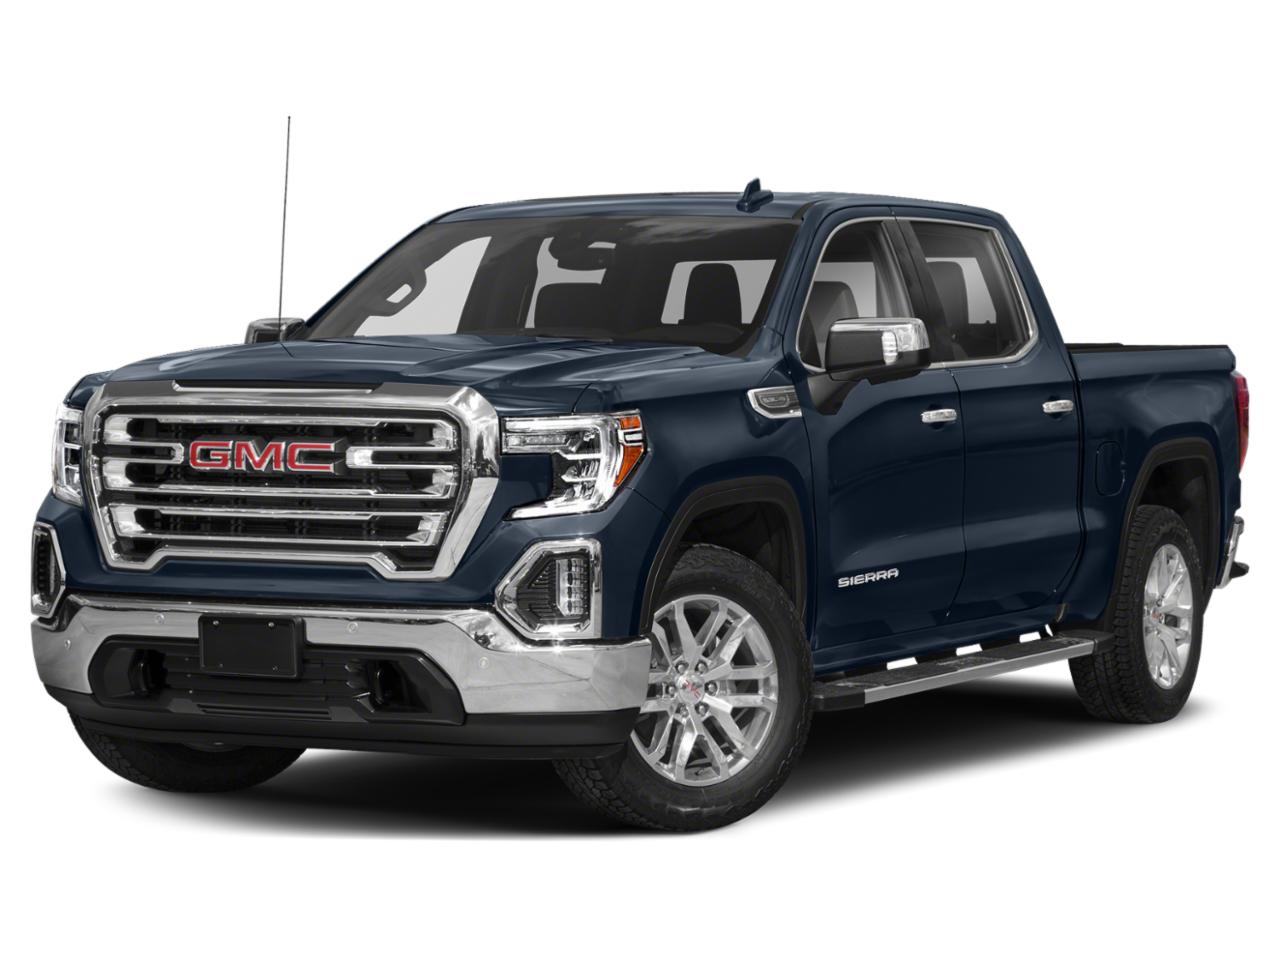 2021 GMC Sierra 1500 Vehicle Photo in Oklahoma City, OK 73114